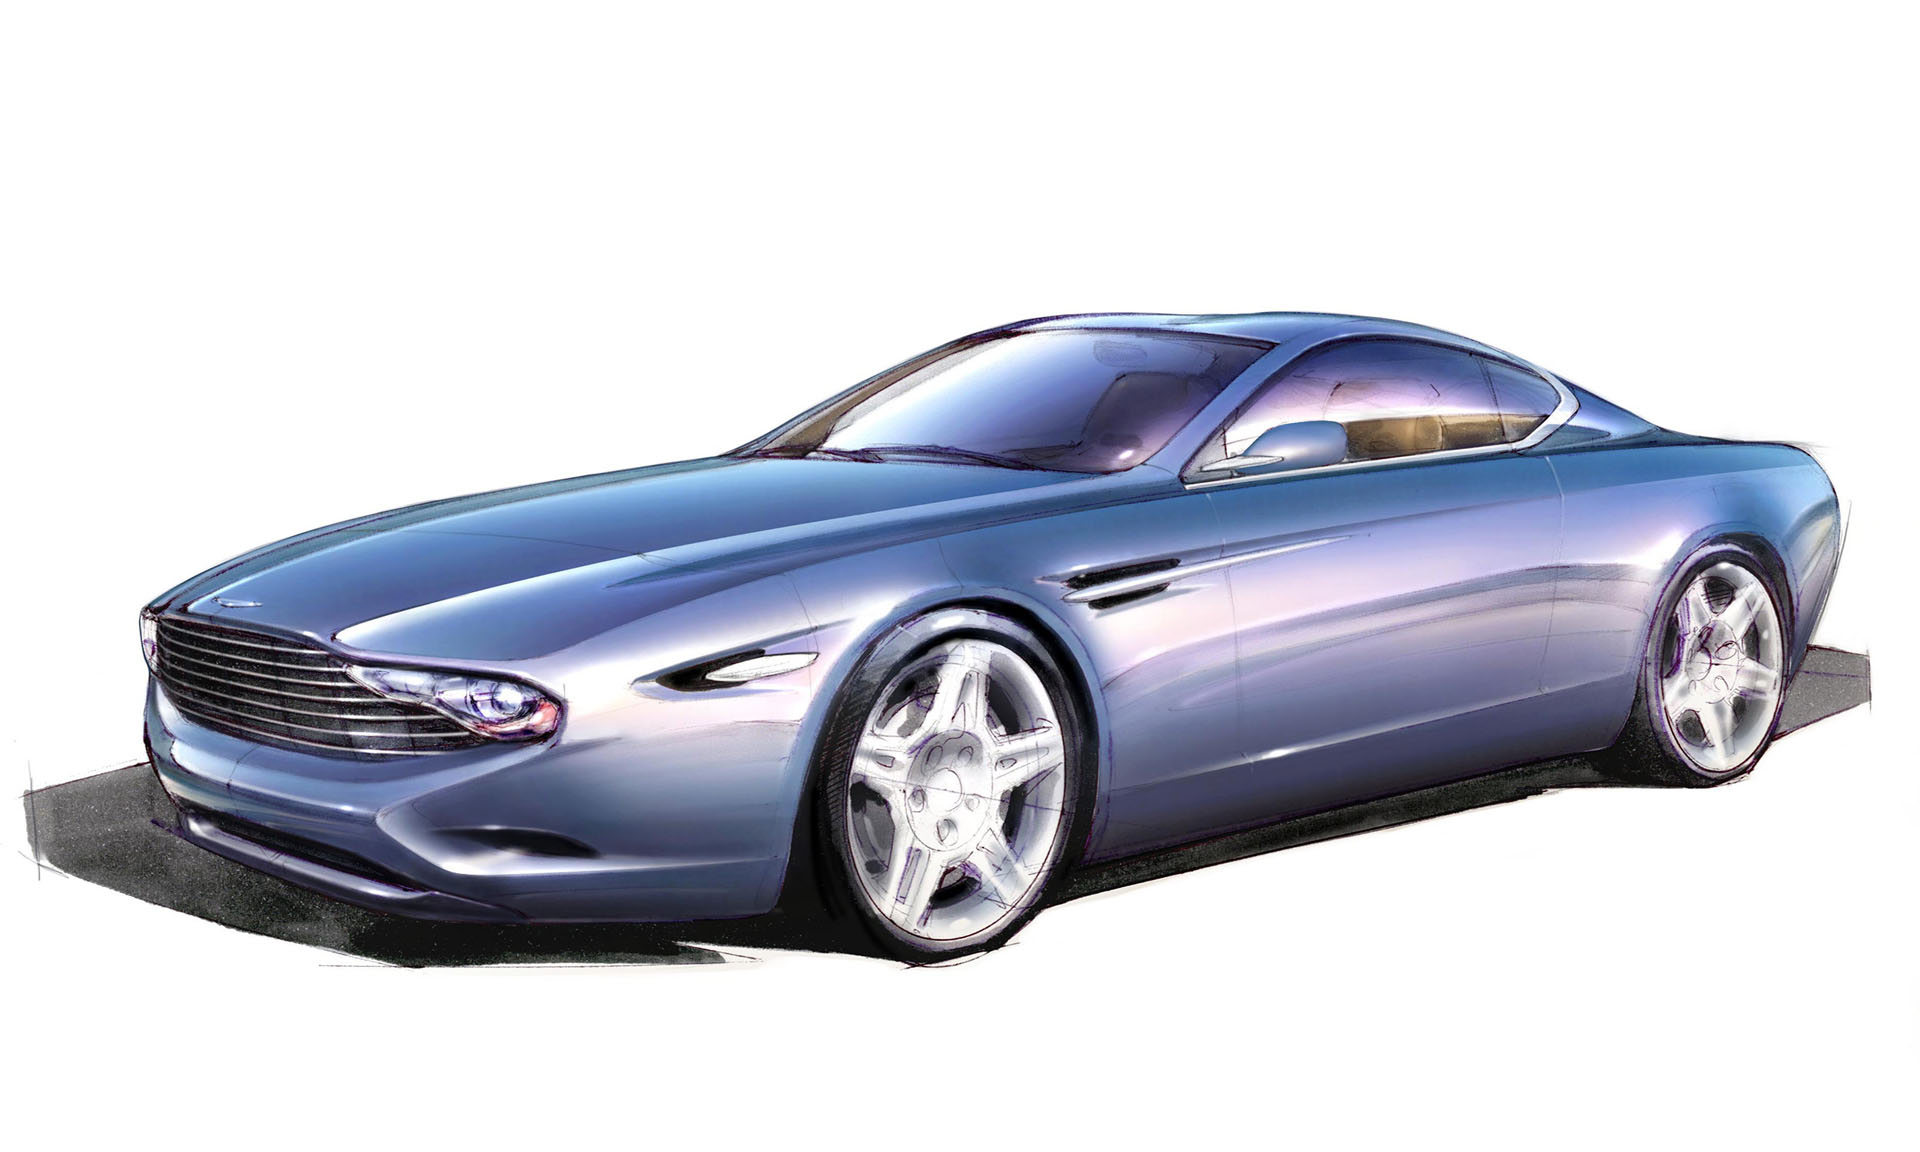 Zagato Chief Design Design Typical of Zagato